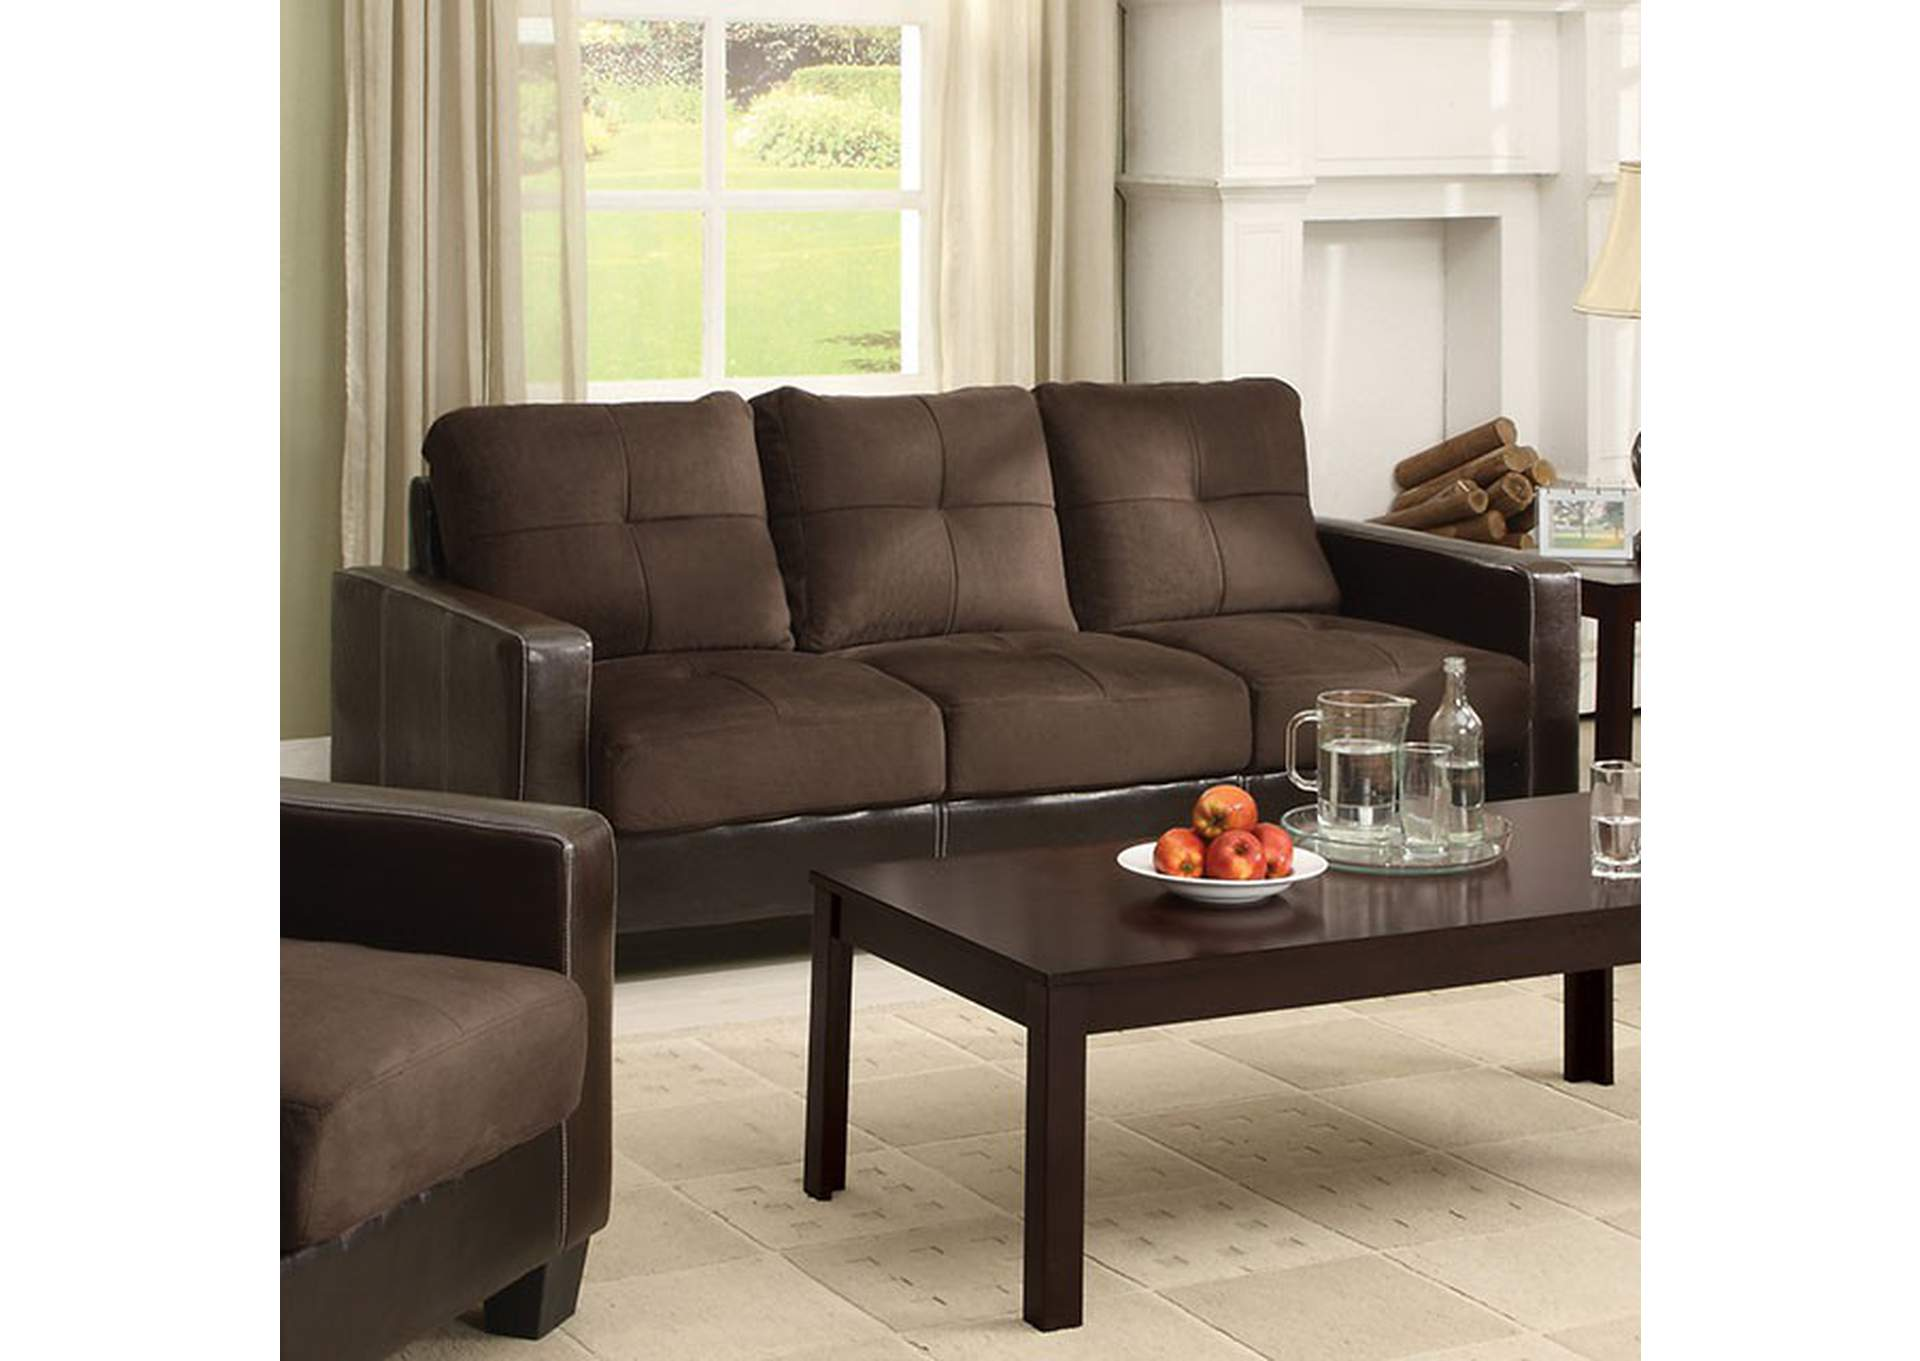 Laverne Chocolate Sofa,Furniture of America